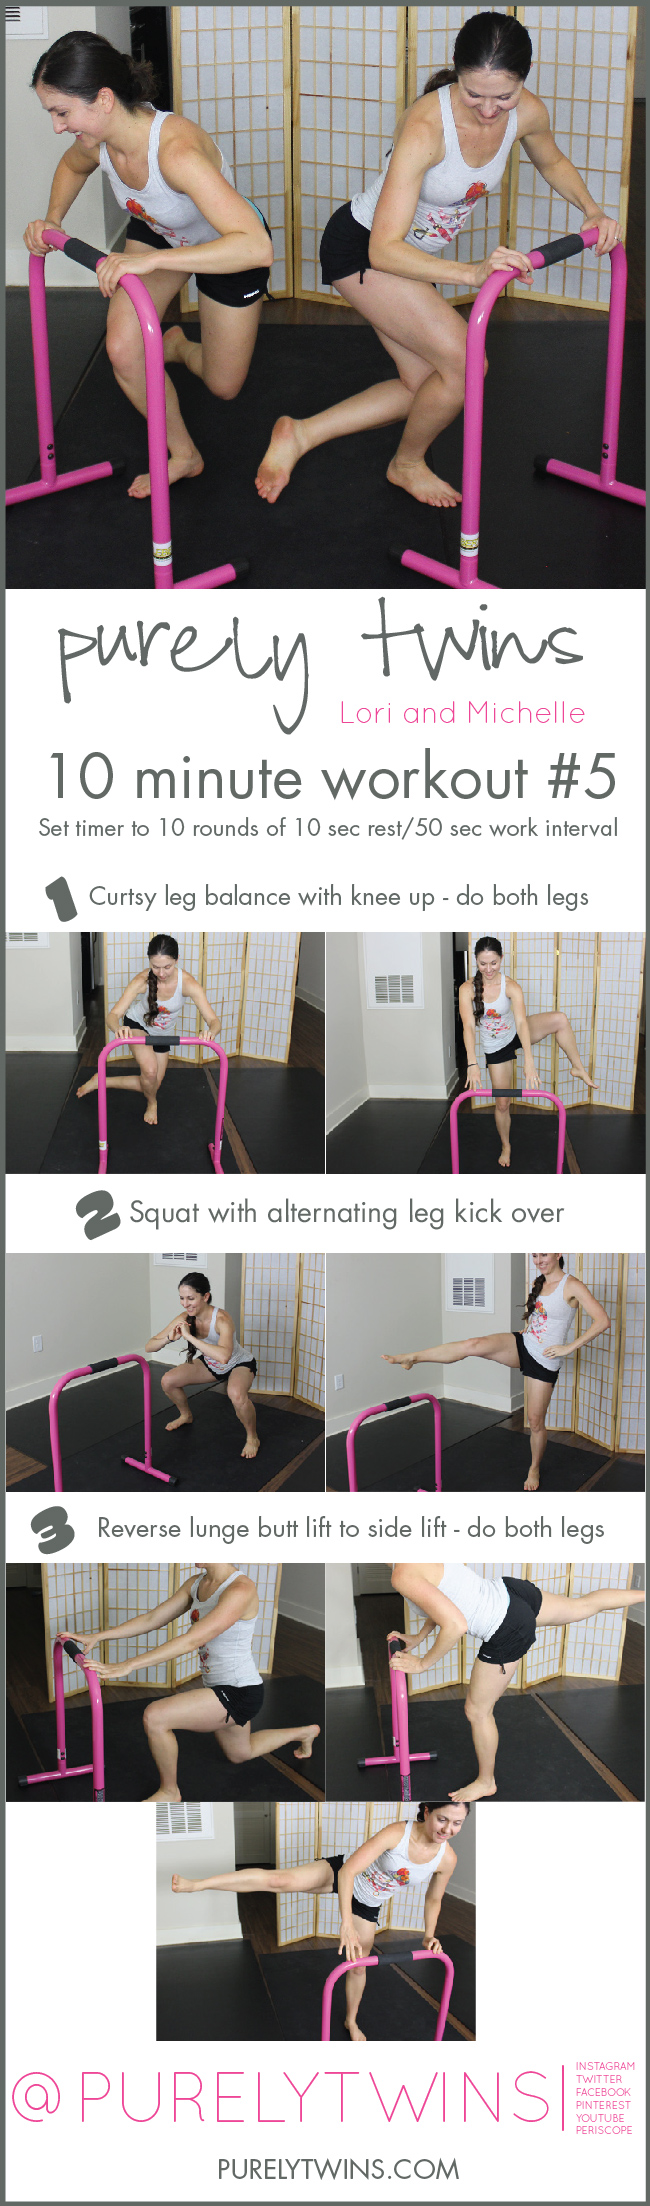 Barre inspired home workout using an equalizer. 10 minute workout for busy ladies to get fit at home.| purelytwins.com